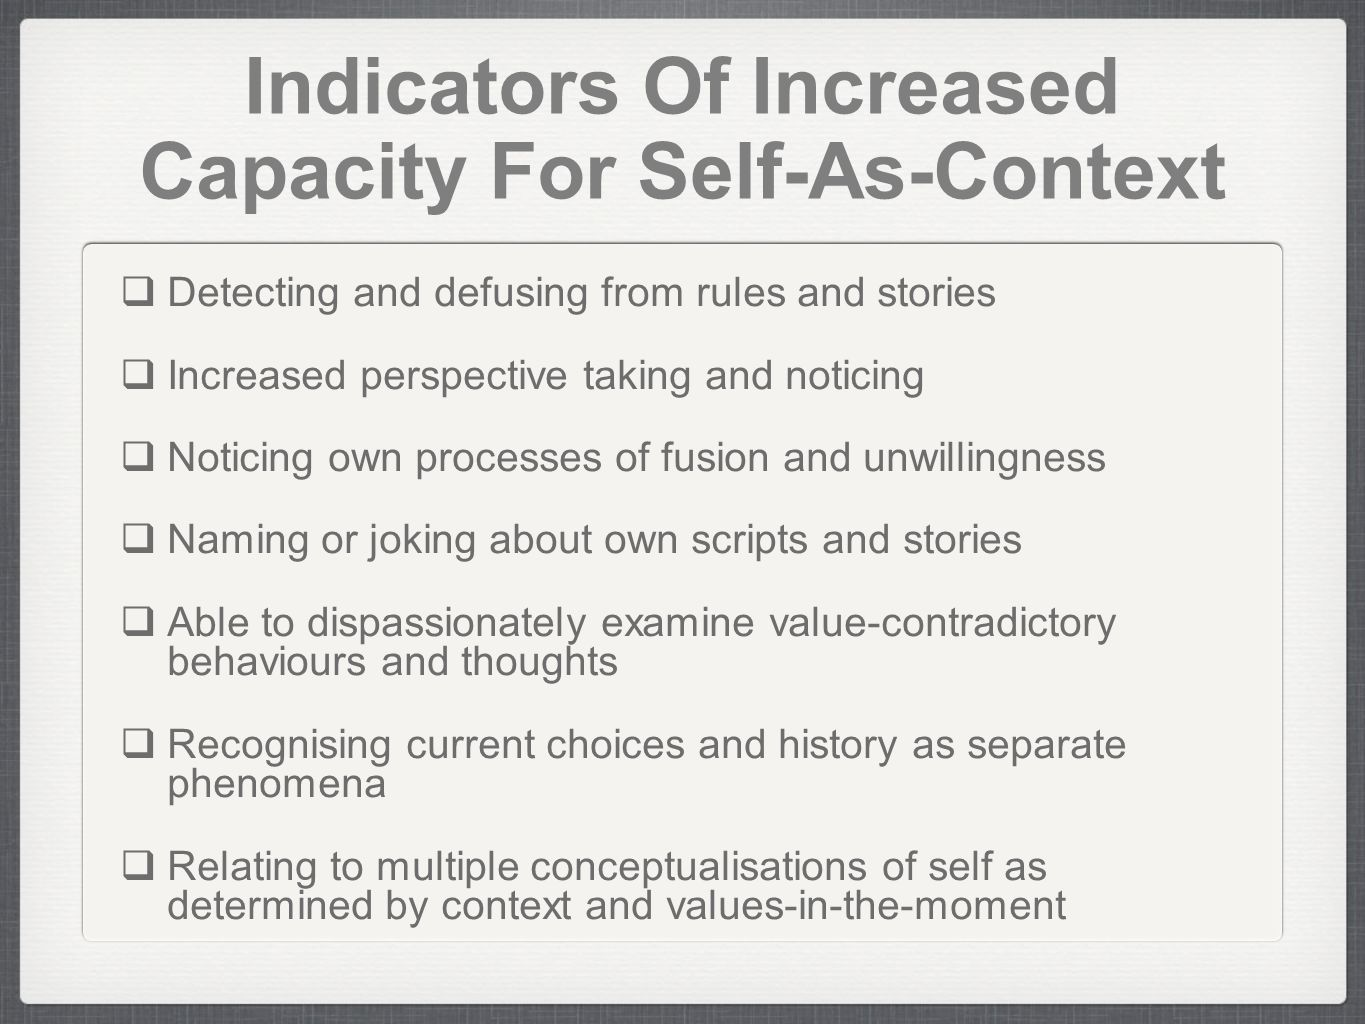 Indicators Of Increased Capacity For Self-As-Context